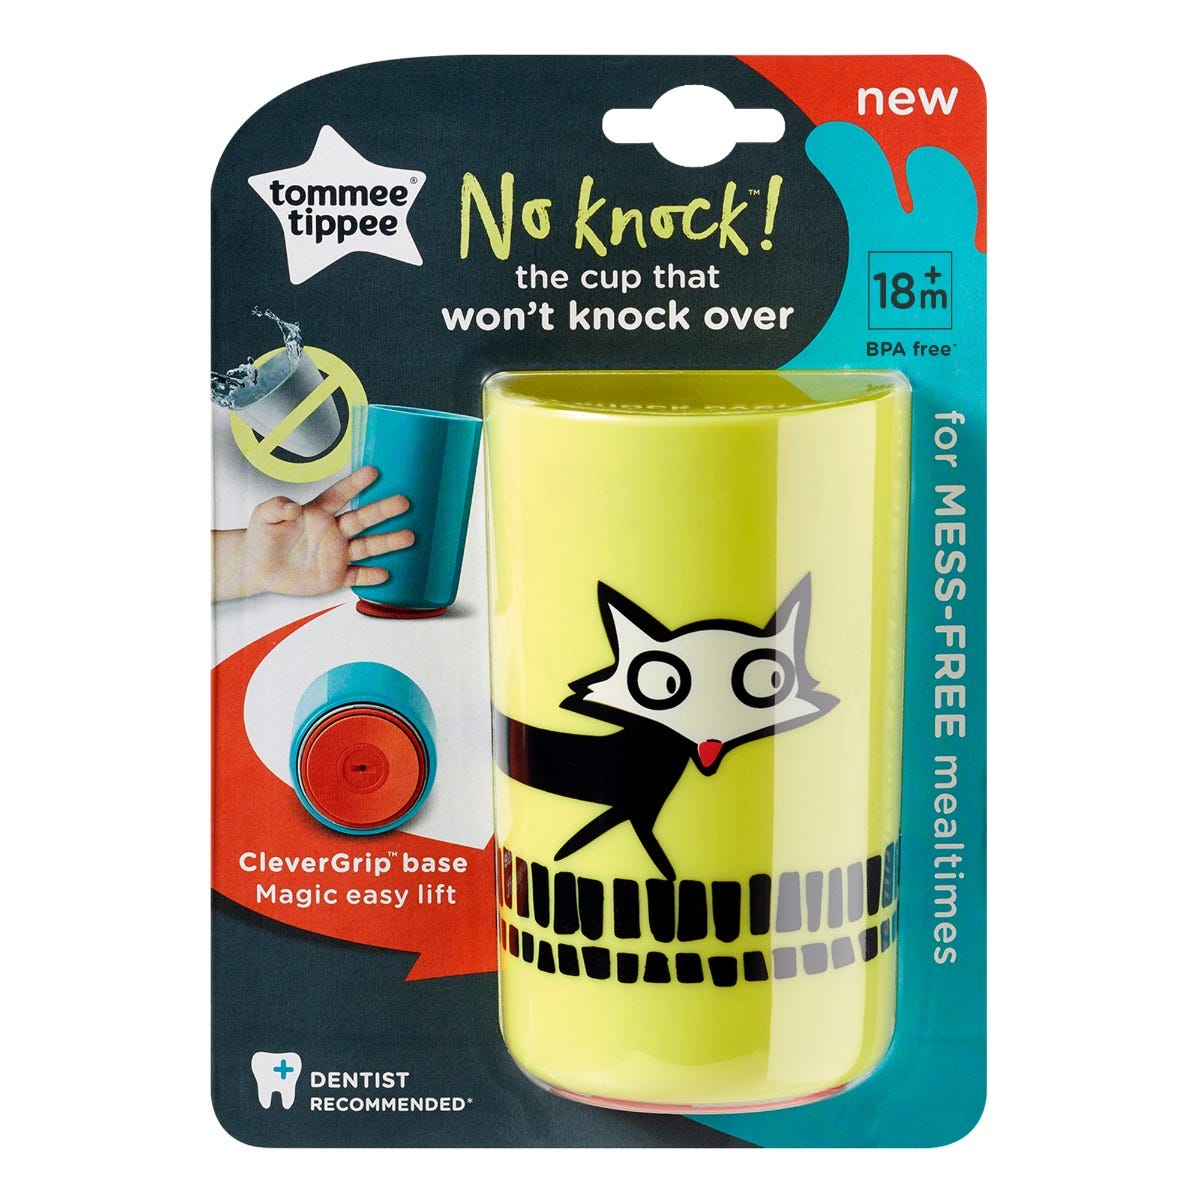 large-yellow-no-knock-cup-with-fox-design-with-packaging